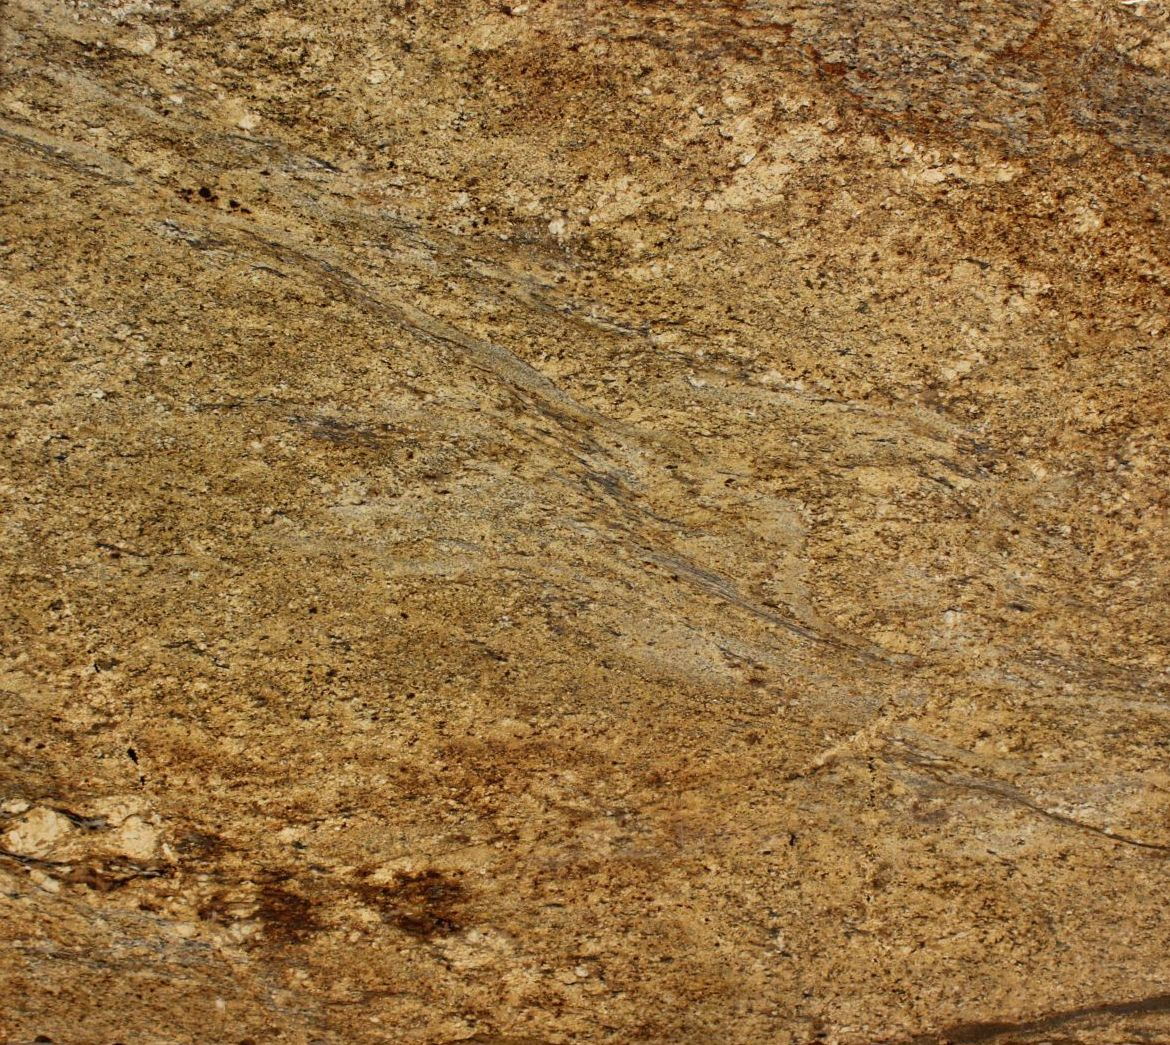 YELLOW RIVER GRANITE SLAB 30MM